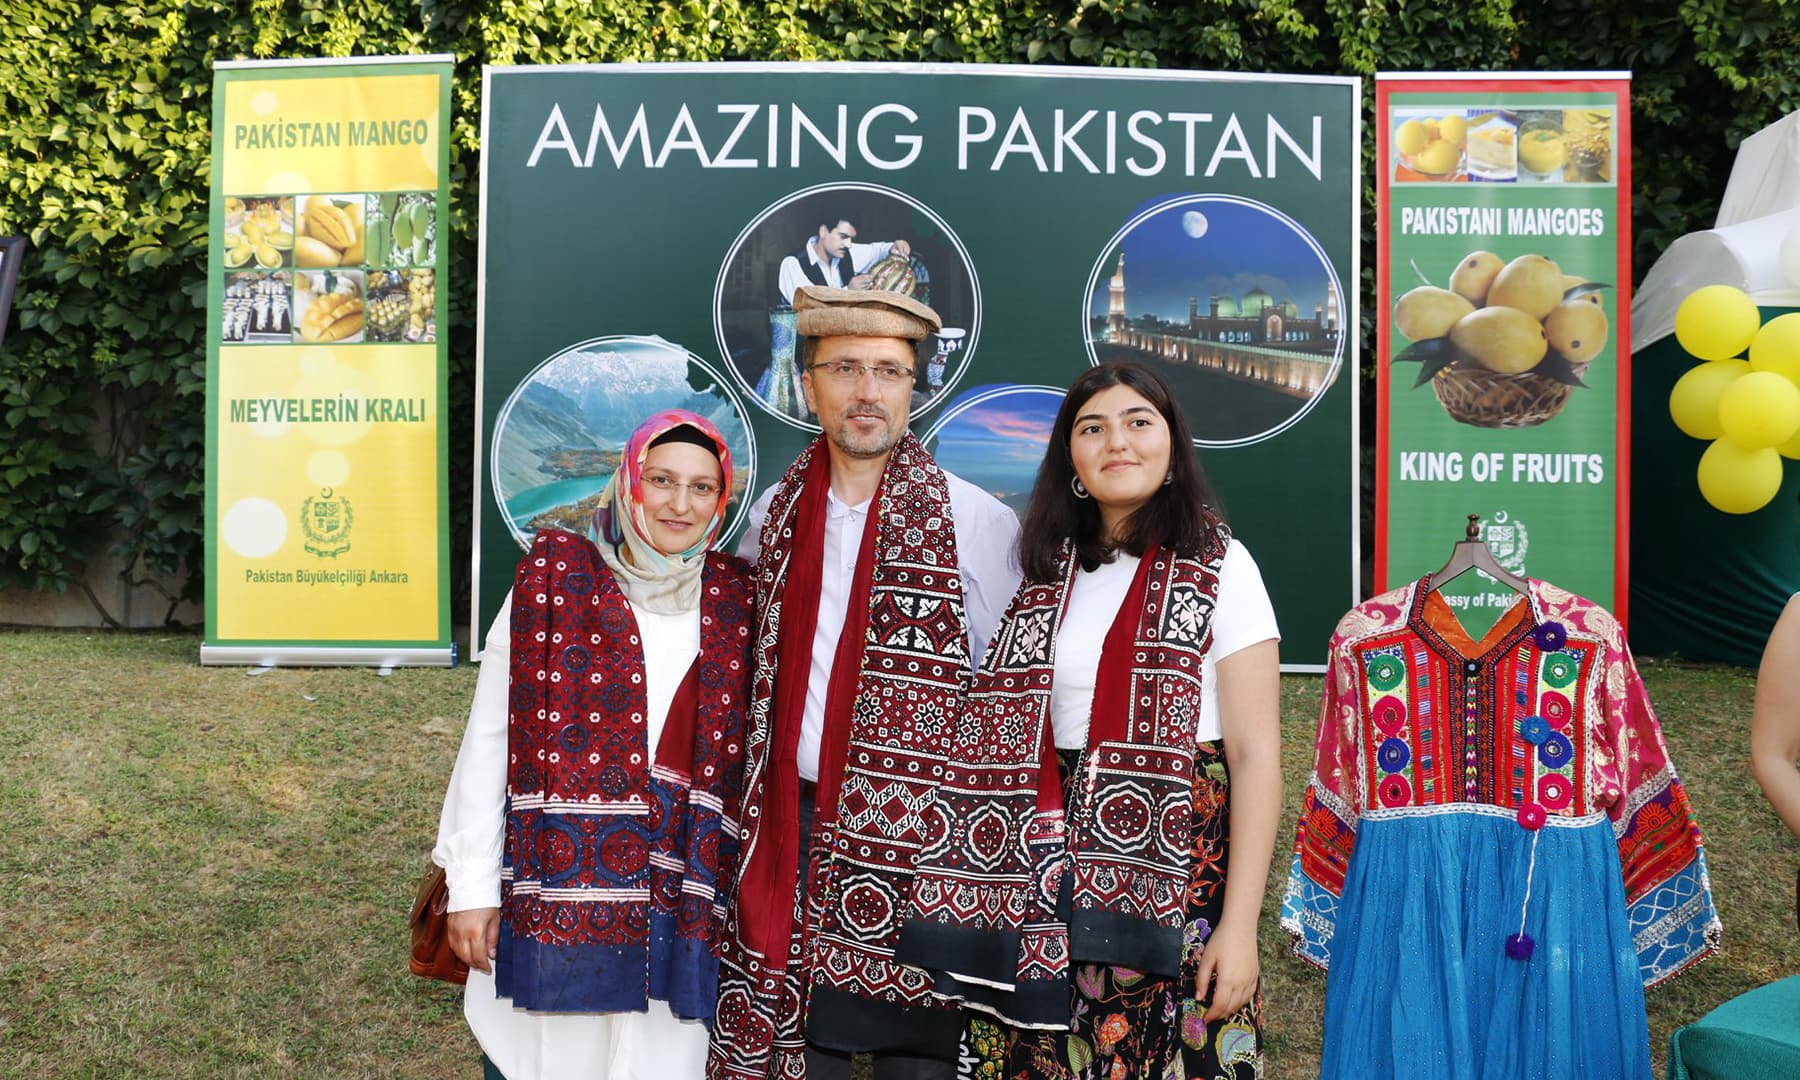 A family poses for a photograph while wearing traditional Sindhi ajrak.